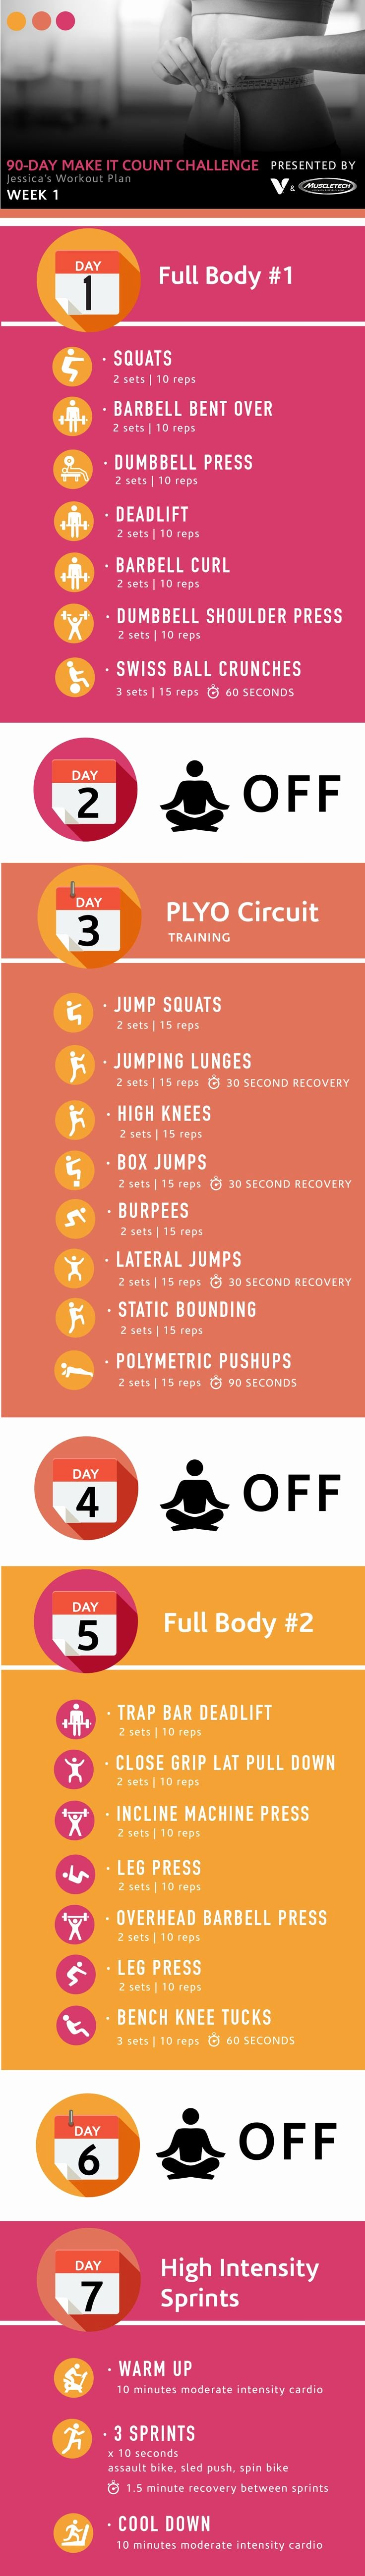 90 Day Workout Plan Awesome Best 25 90 Day Workout Plan Ideas On Pinterest